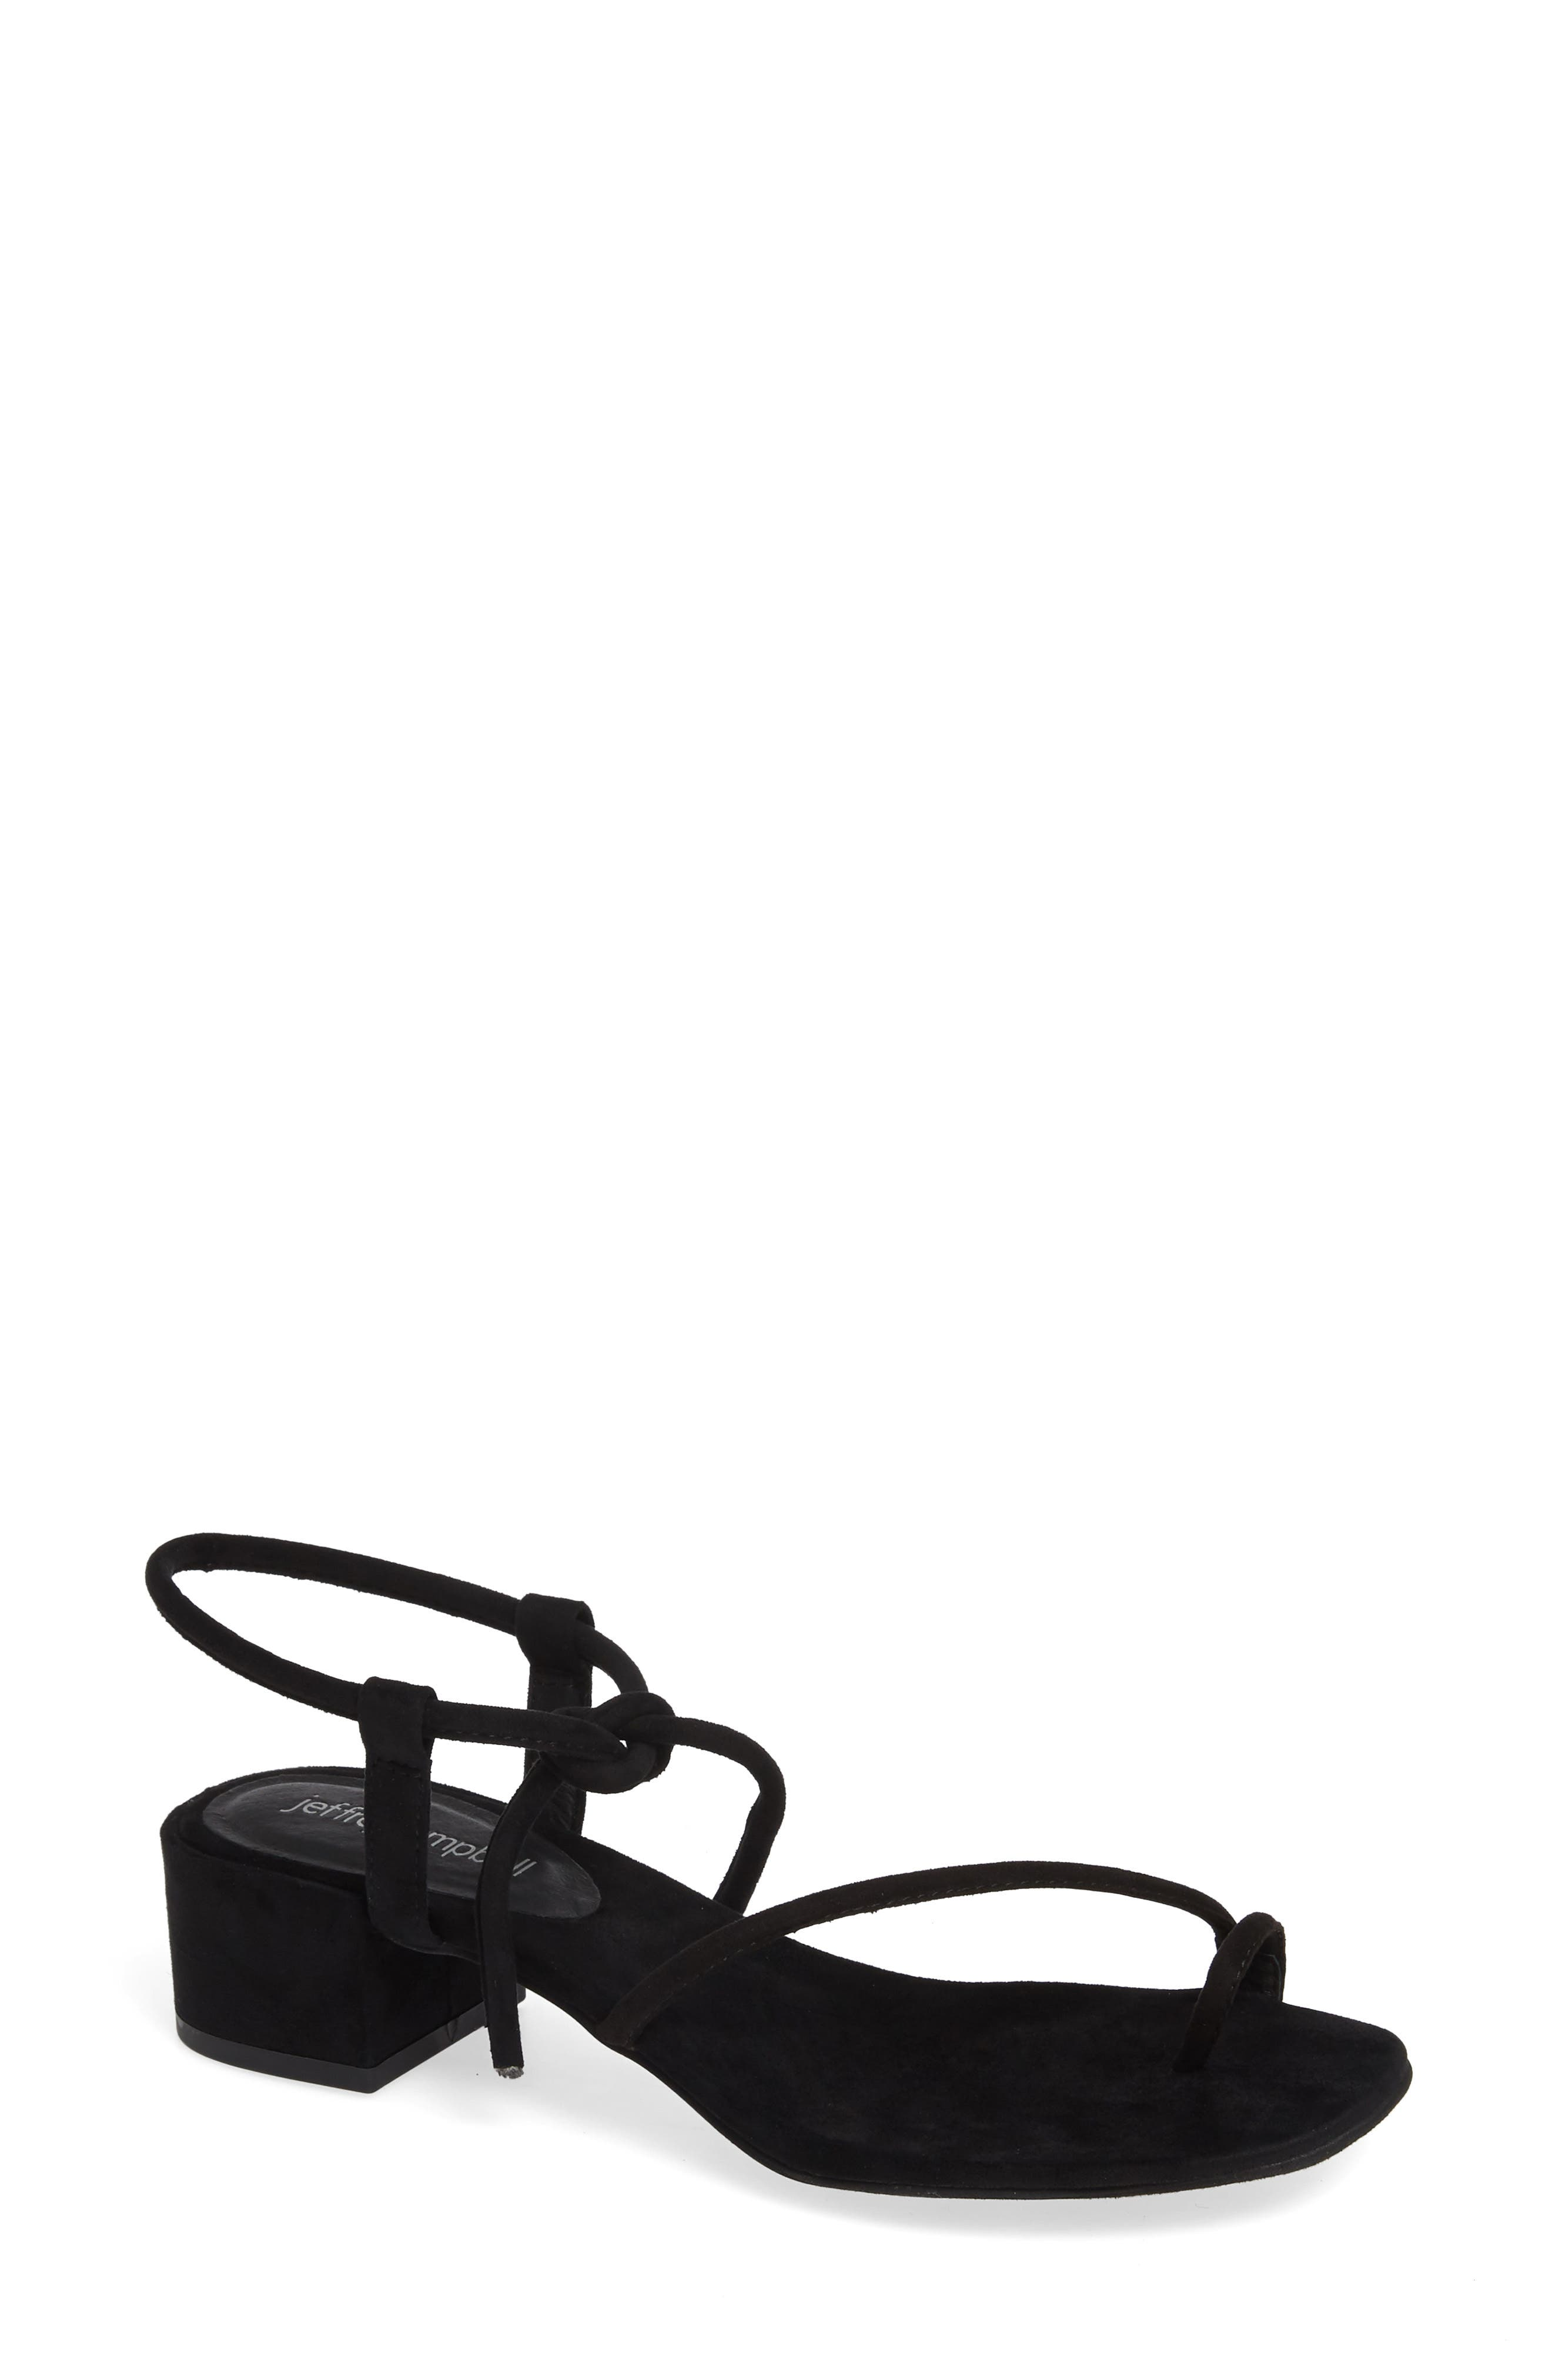 JEFFREY CAMPBELL, Strappy Sandal, Main thumbnail 1, color, 005